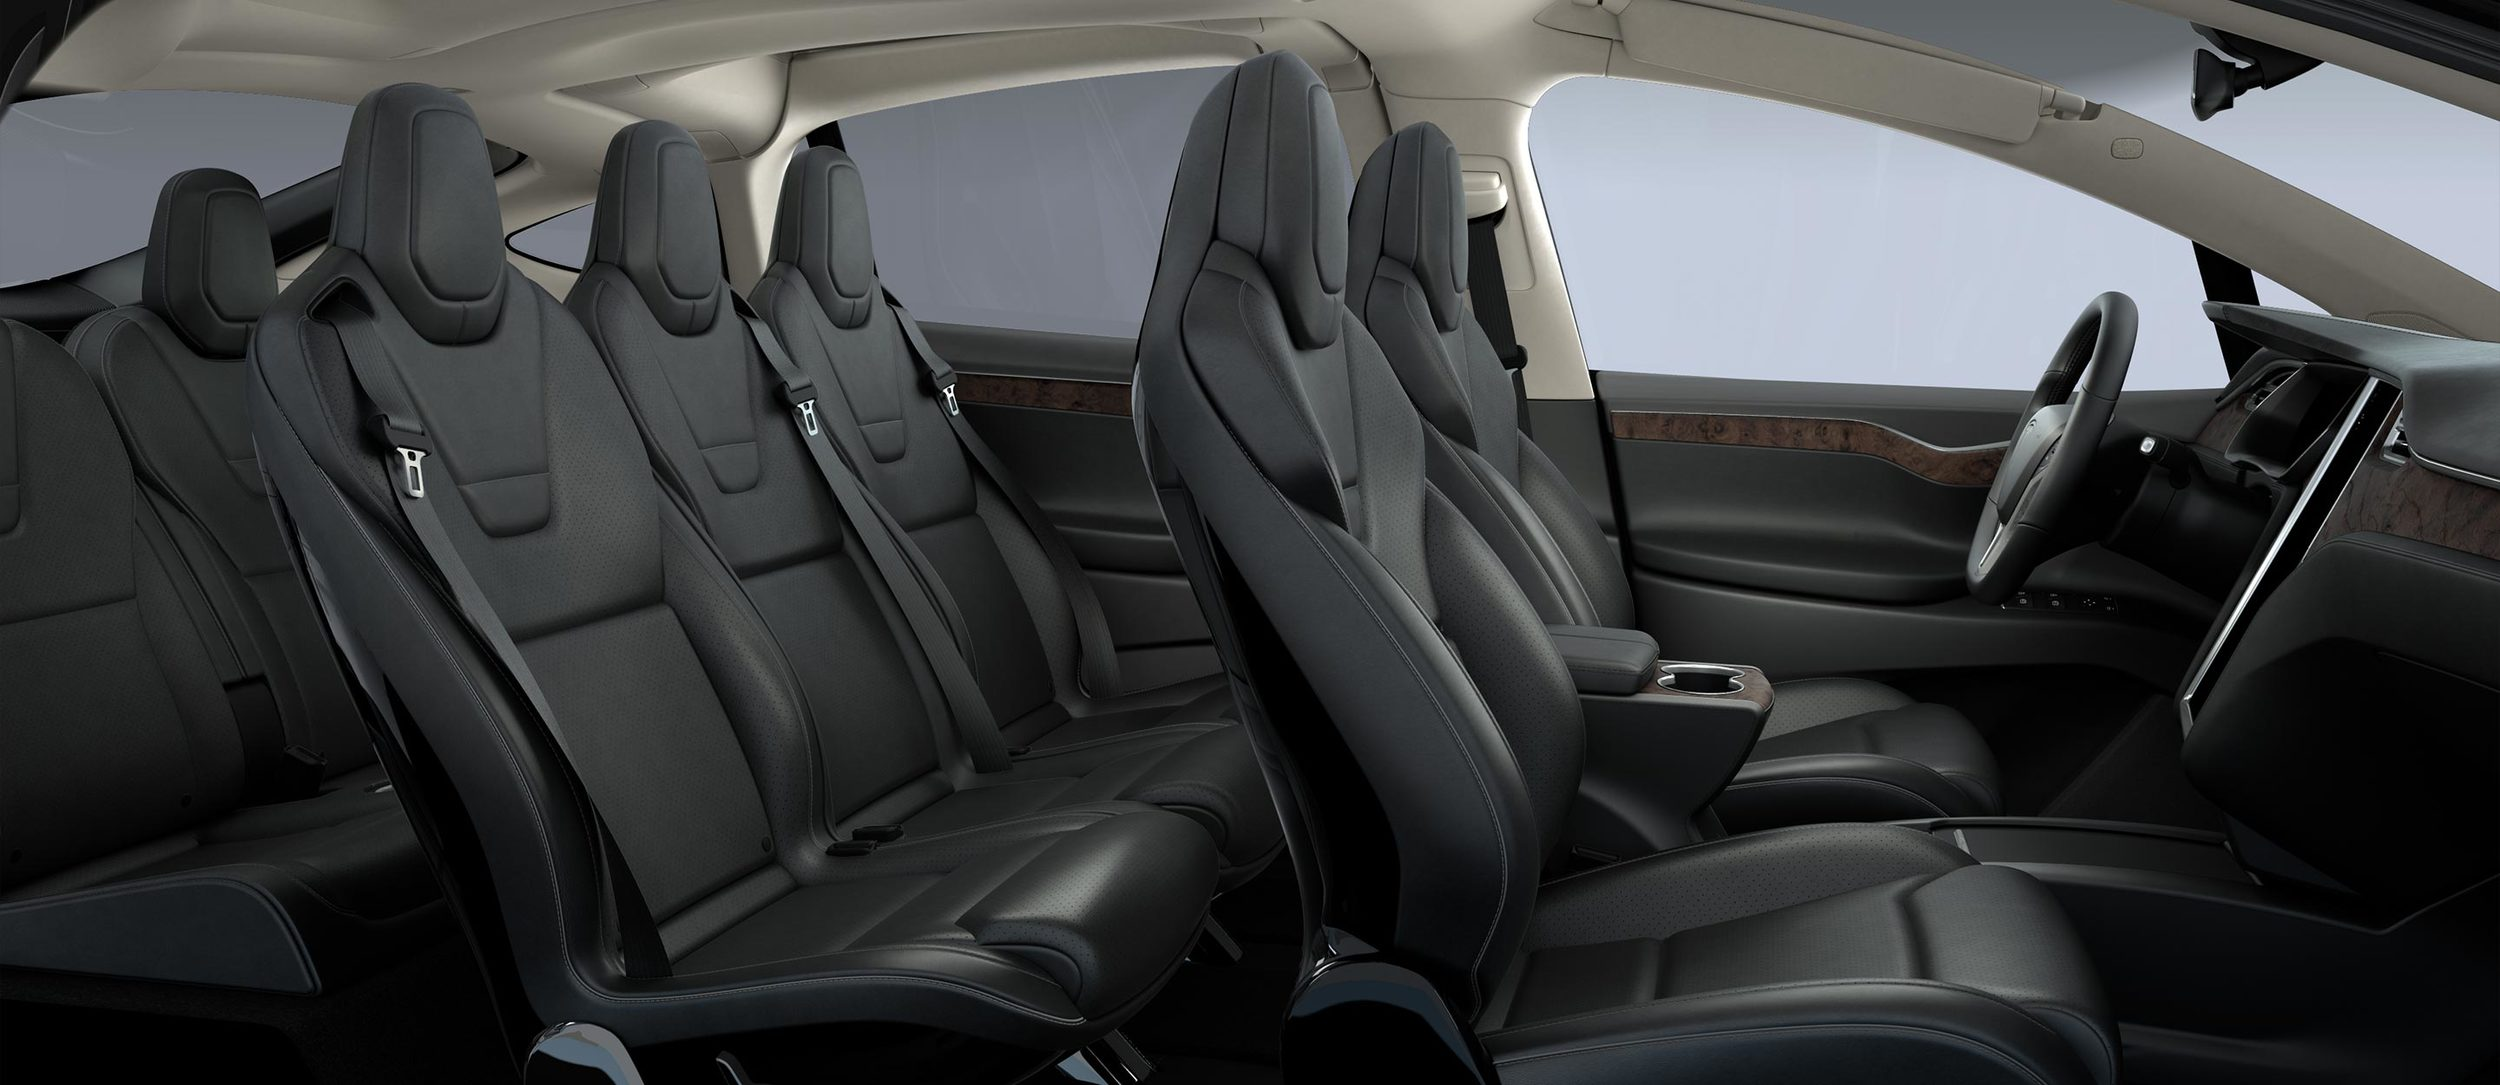 section-interior-primary-black.jpg